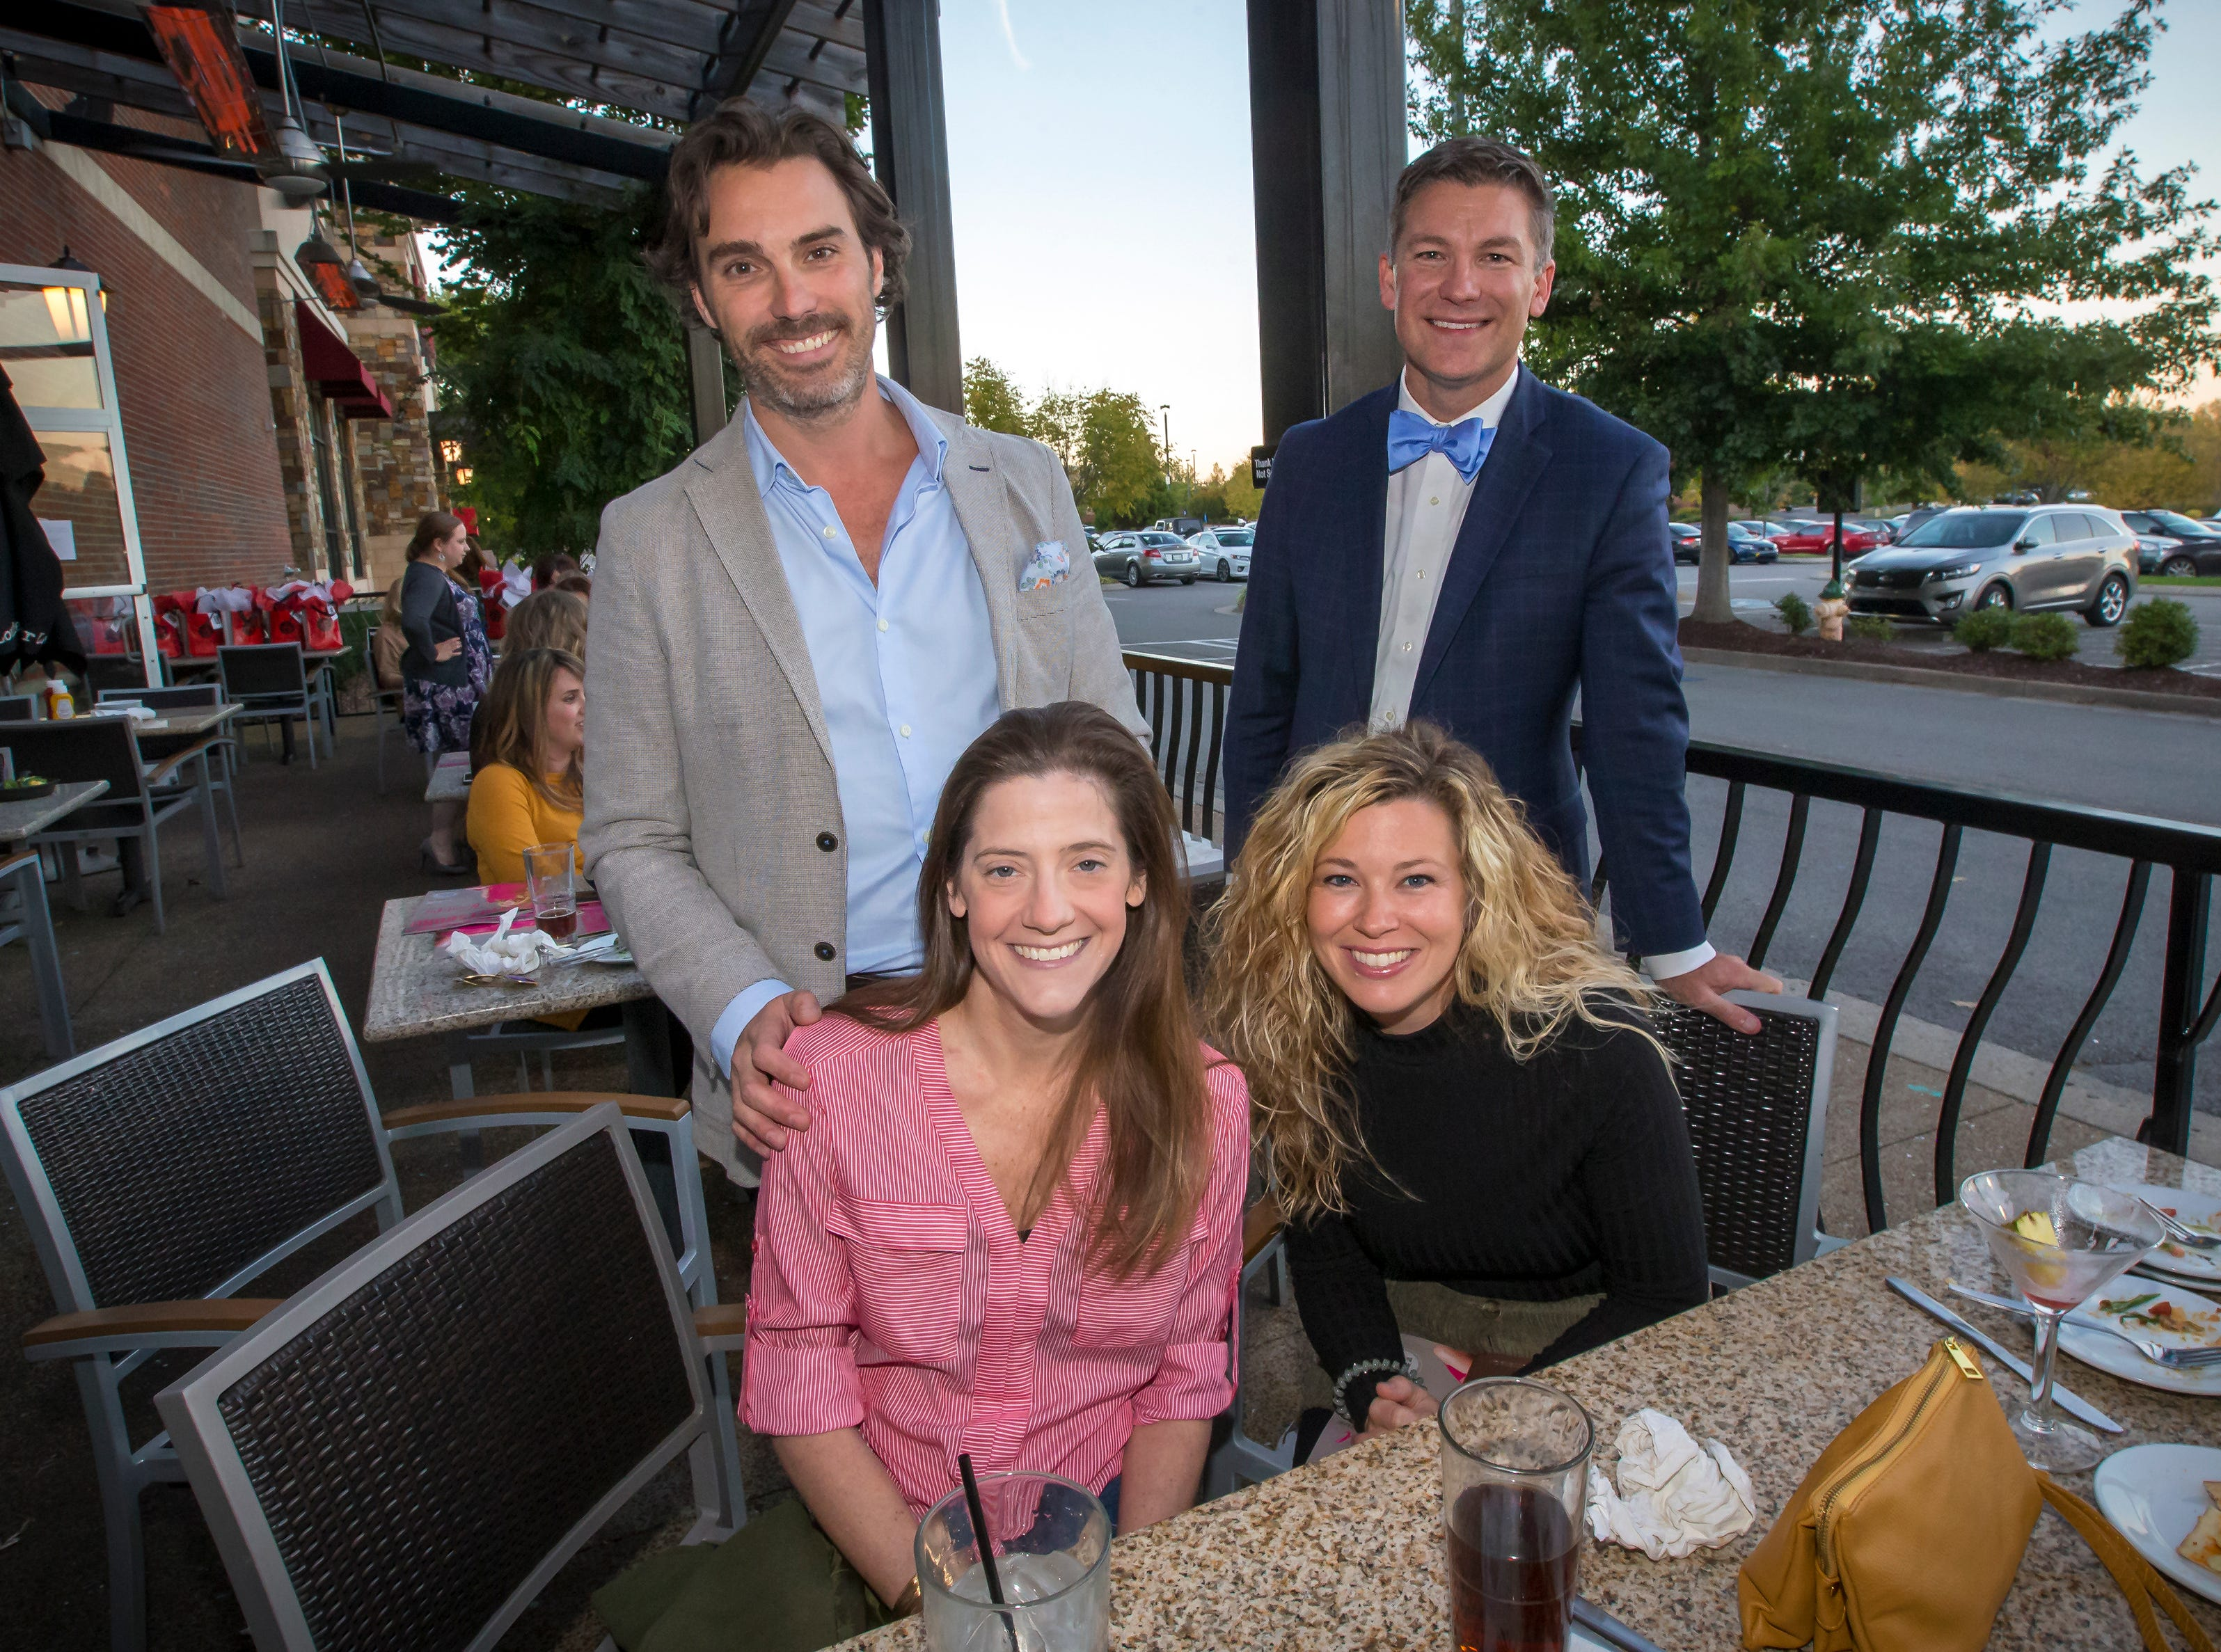 Kristin and Greg Kovach and Chelsea and Gabriel Fancher at the Lara and Kevin Allen at the Murfreesboro Magazine Most Beautiful People event held at Bar Louie.